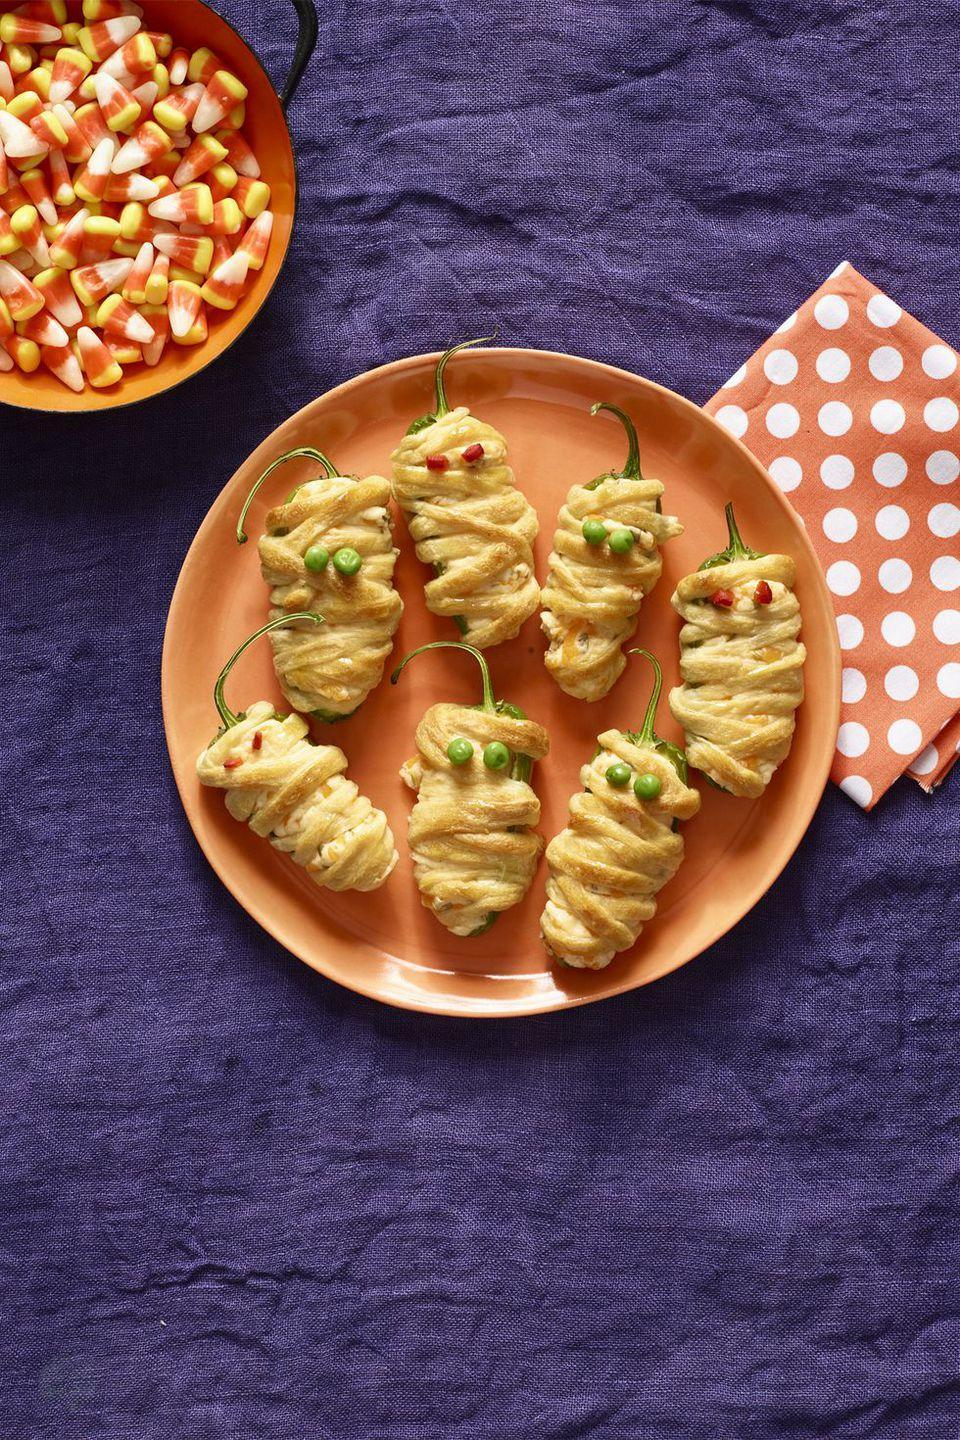 "<p>Wrap jalapeno poppers with puff pastry, then add roasted red pepper or peas for mummy eyes.</p><p><strong><a href=""https://www.womansday.com/food-recipes/food-drinks/recipes/a56191/hot-pepper-mummies-recipe/"" rel=""nofollow noopener"" target=""_blank"" data-ylk=""slk:Get the recipe"" class=""link rapid-noclick-resp"">Get the recipe</a>.</strong></p>"